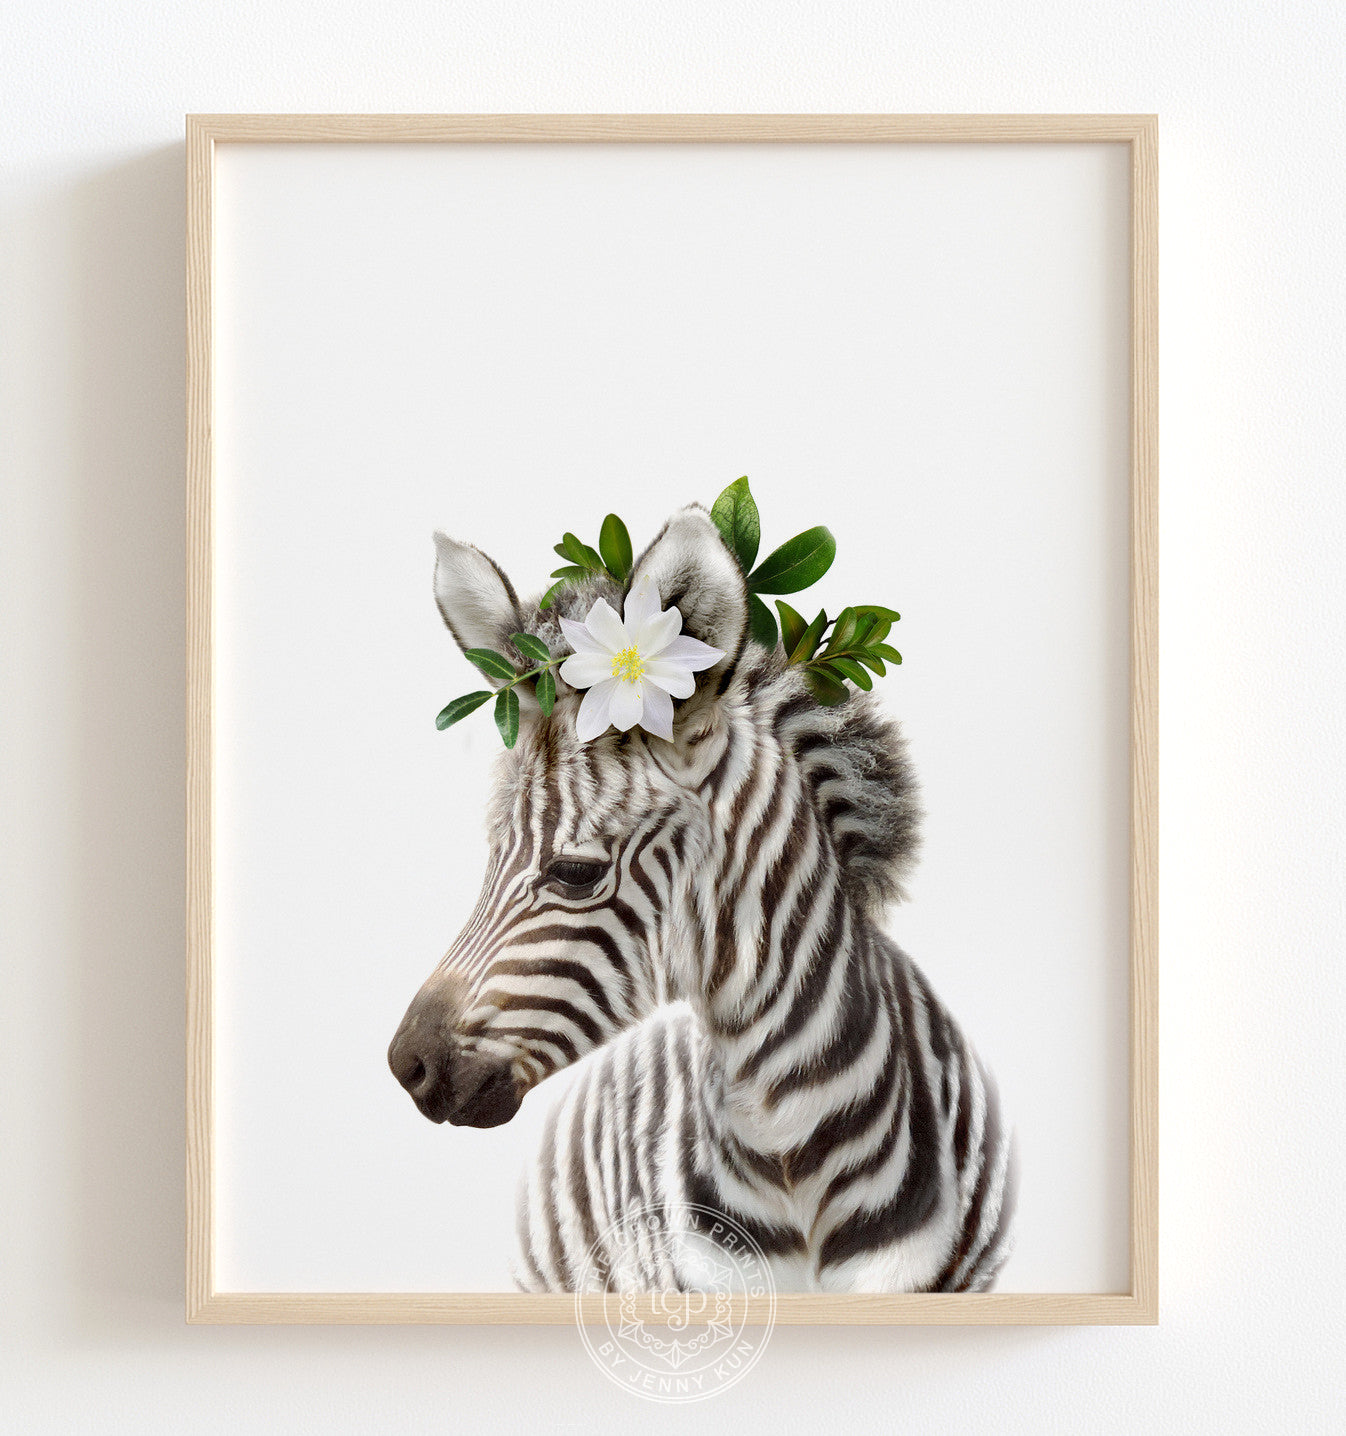 Baby Zebra with Flower Crown Printable Art